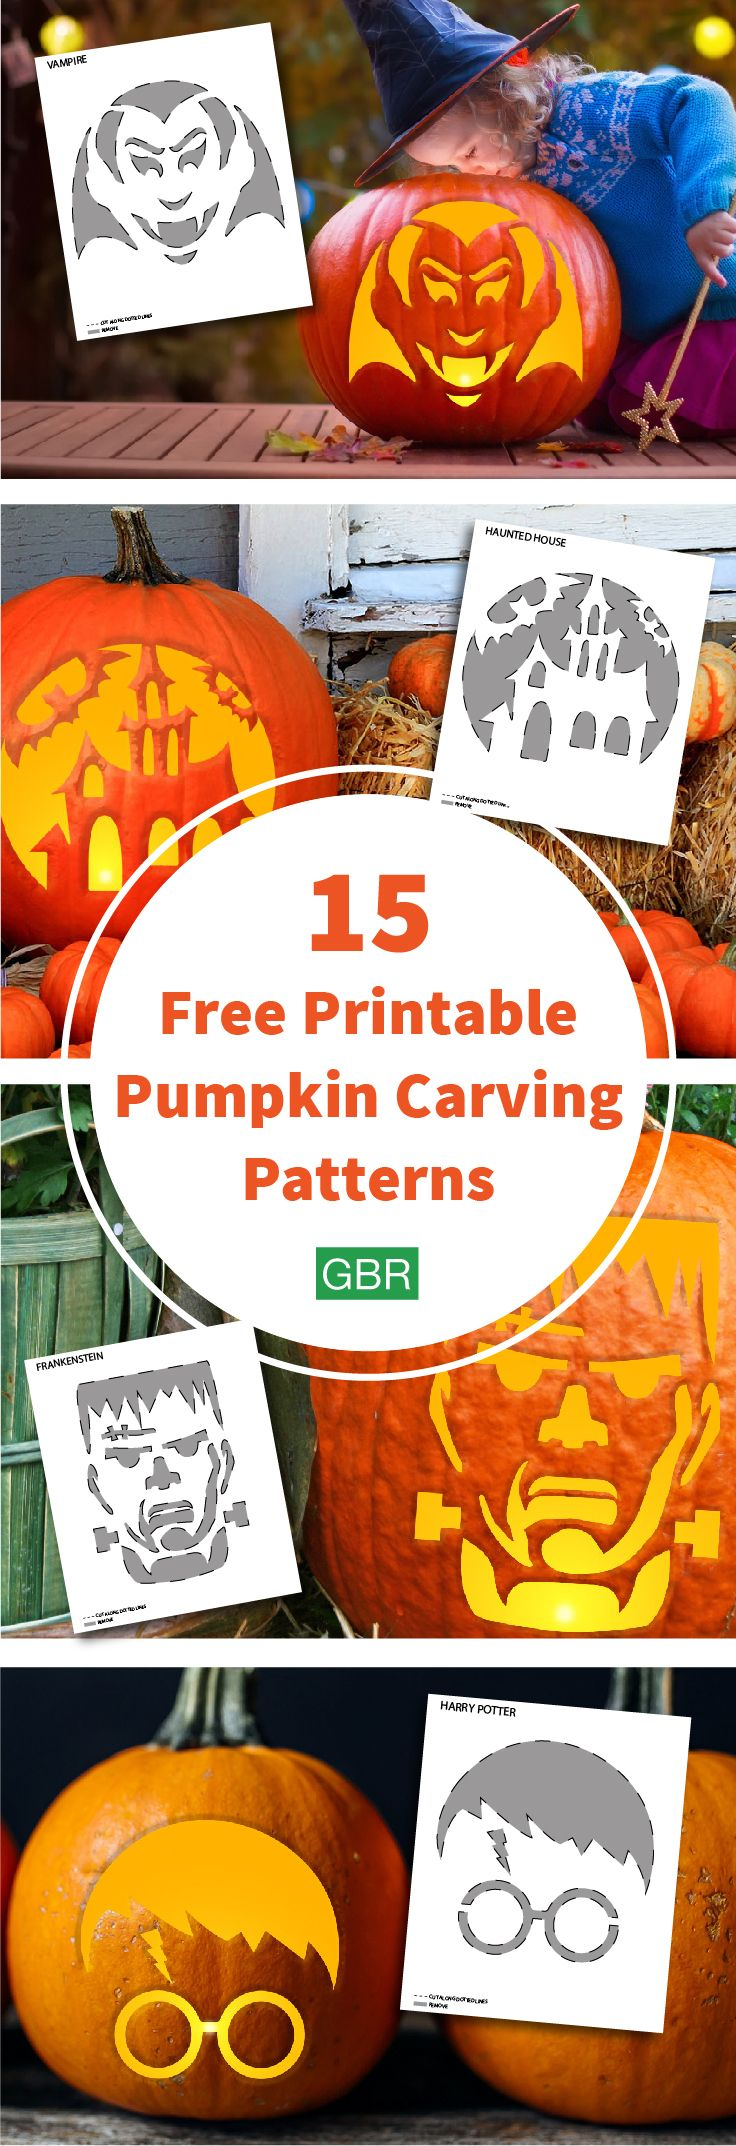 Be sure to save these free templates, so you're ready for pumpkin carving season!